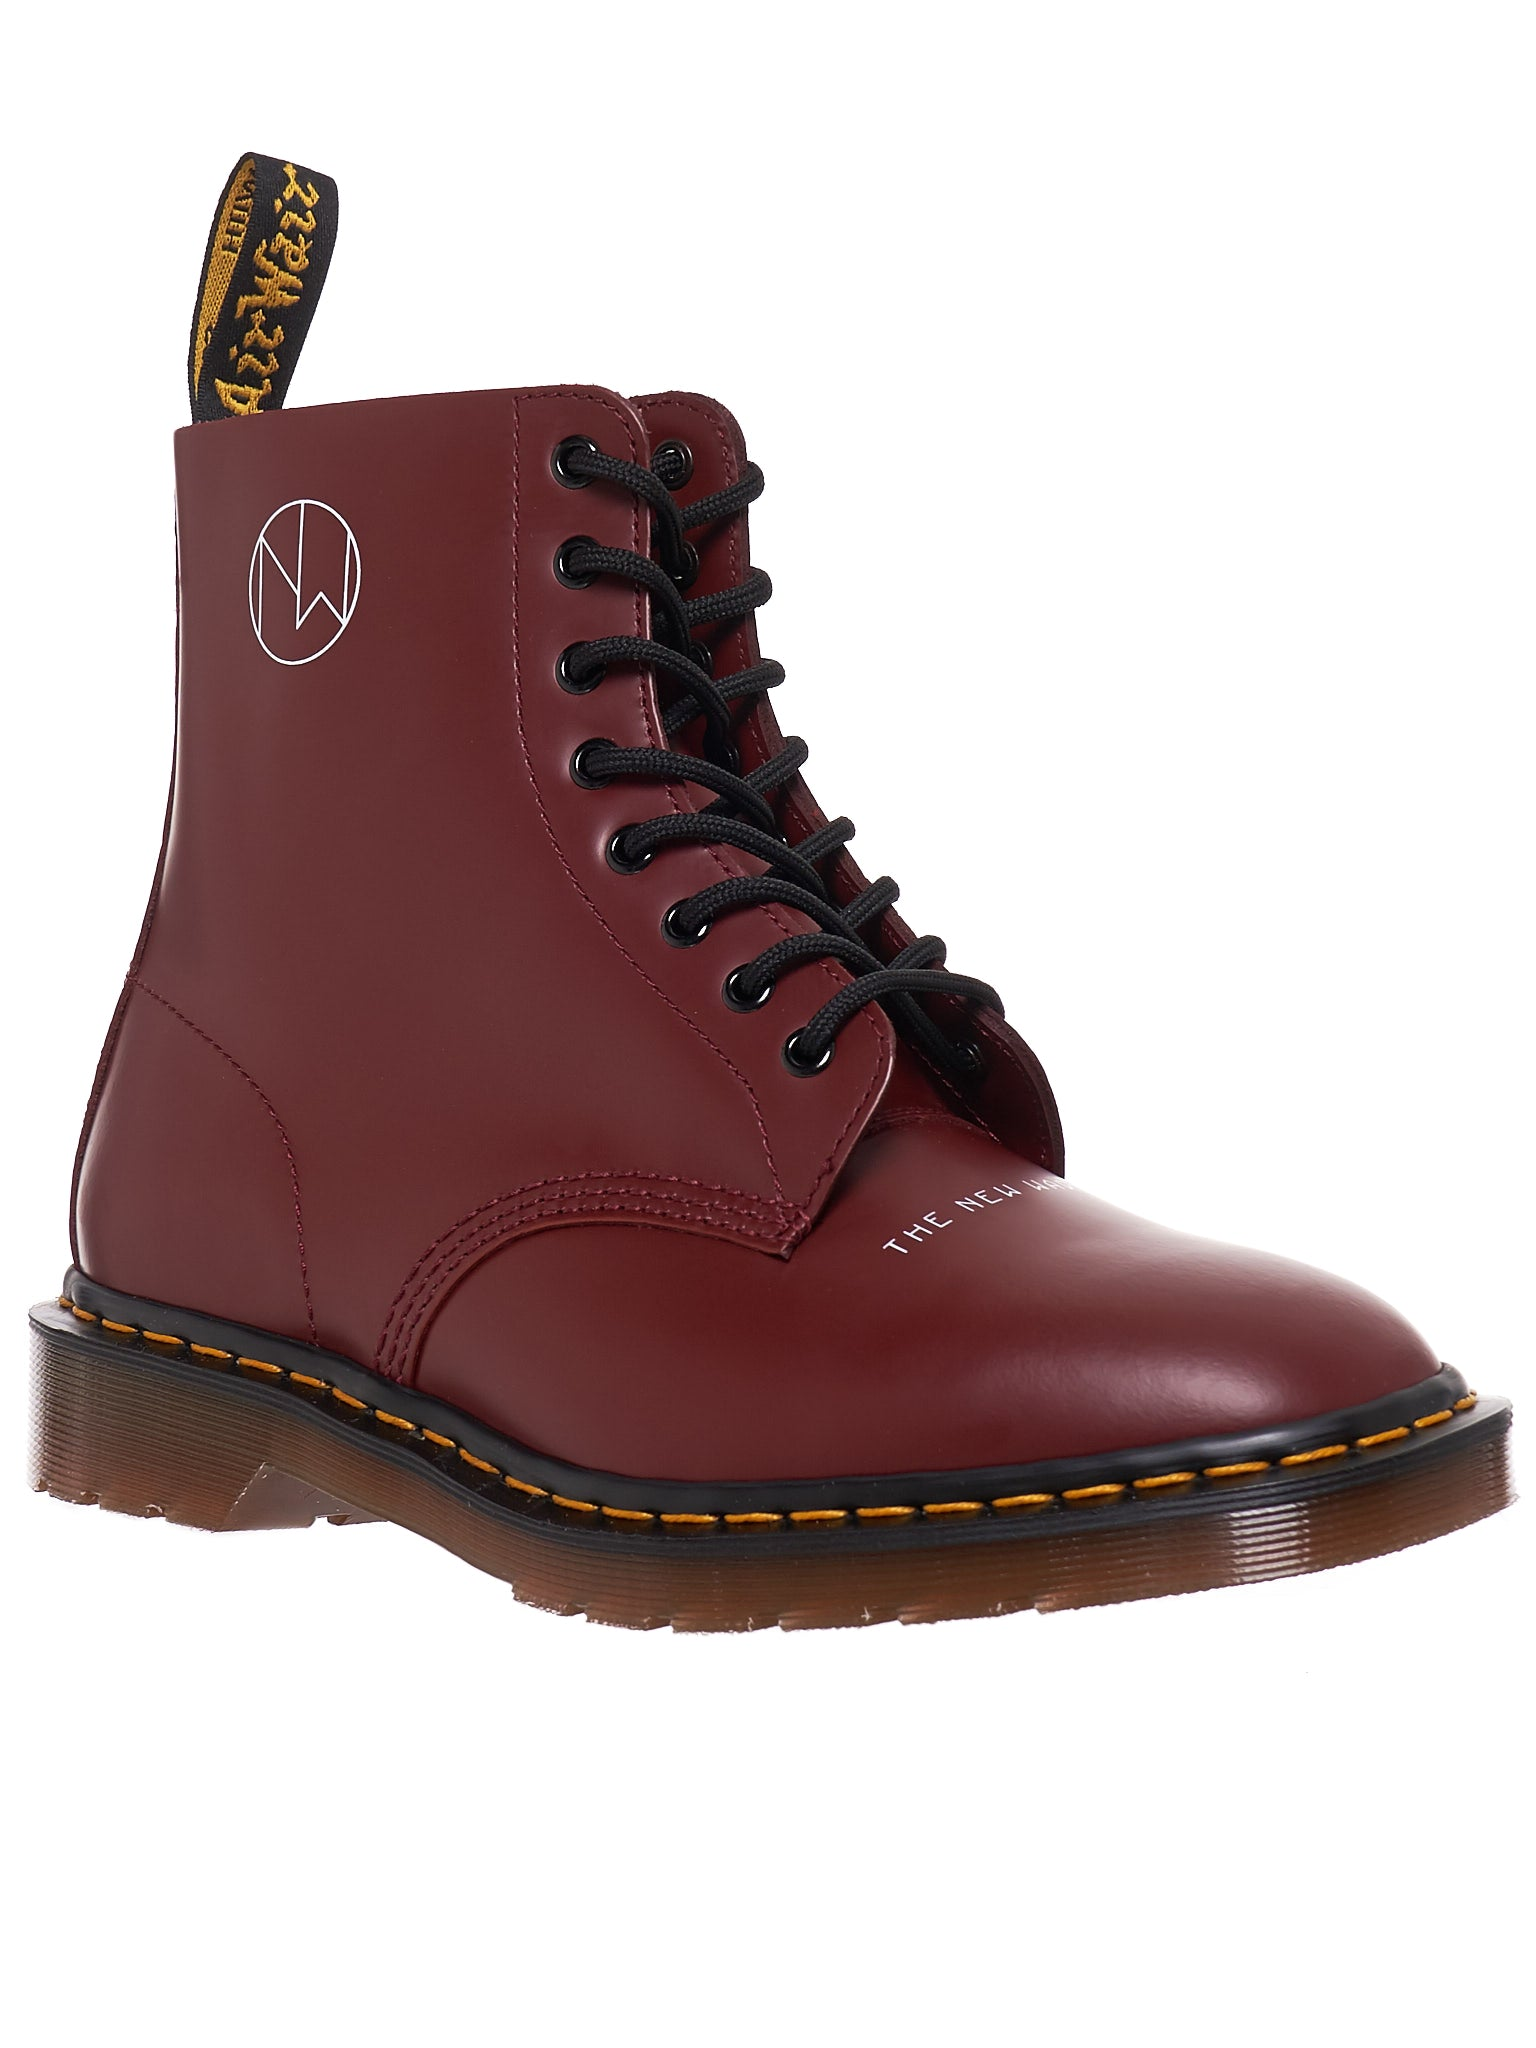 Undercover x Dr. Martens Boot - Hlorenzo Side